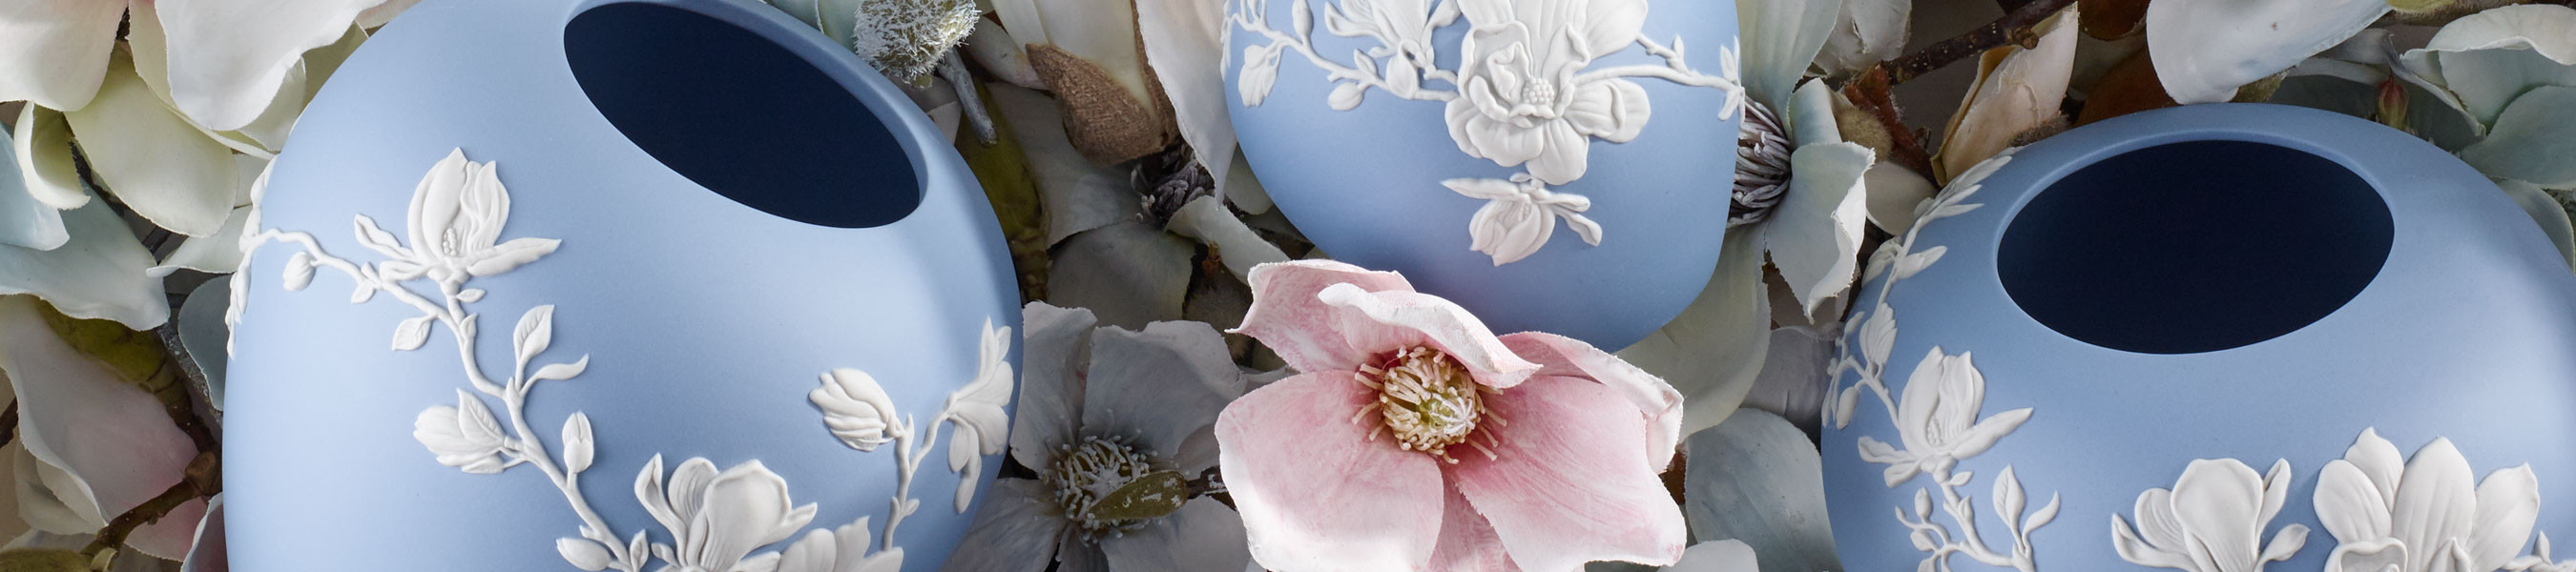 wedgwood bud vase of magnolia blossom collection wedgwooda official us site throughout magnolia blossom